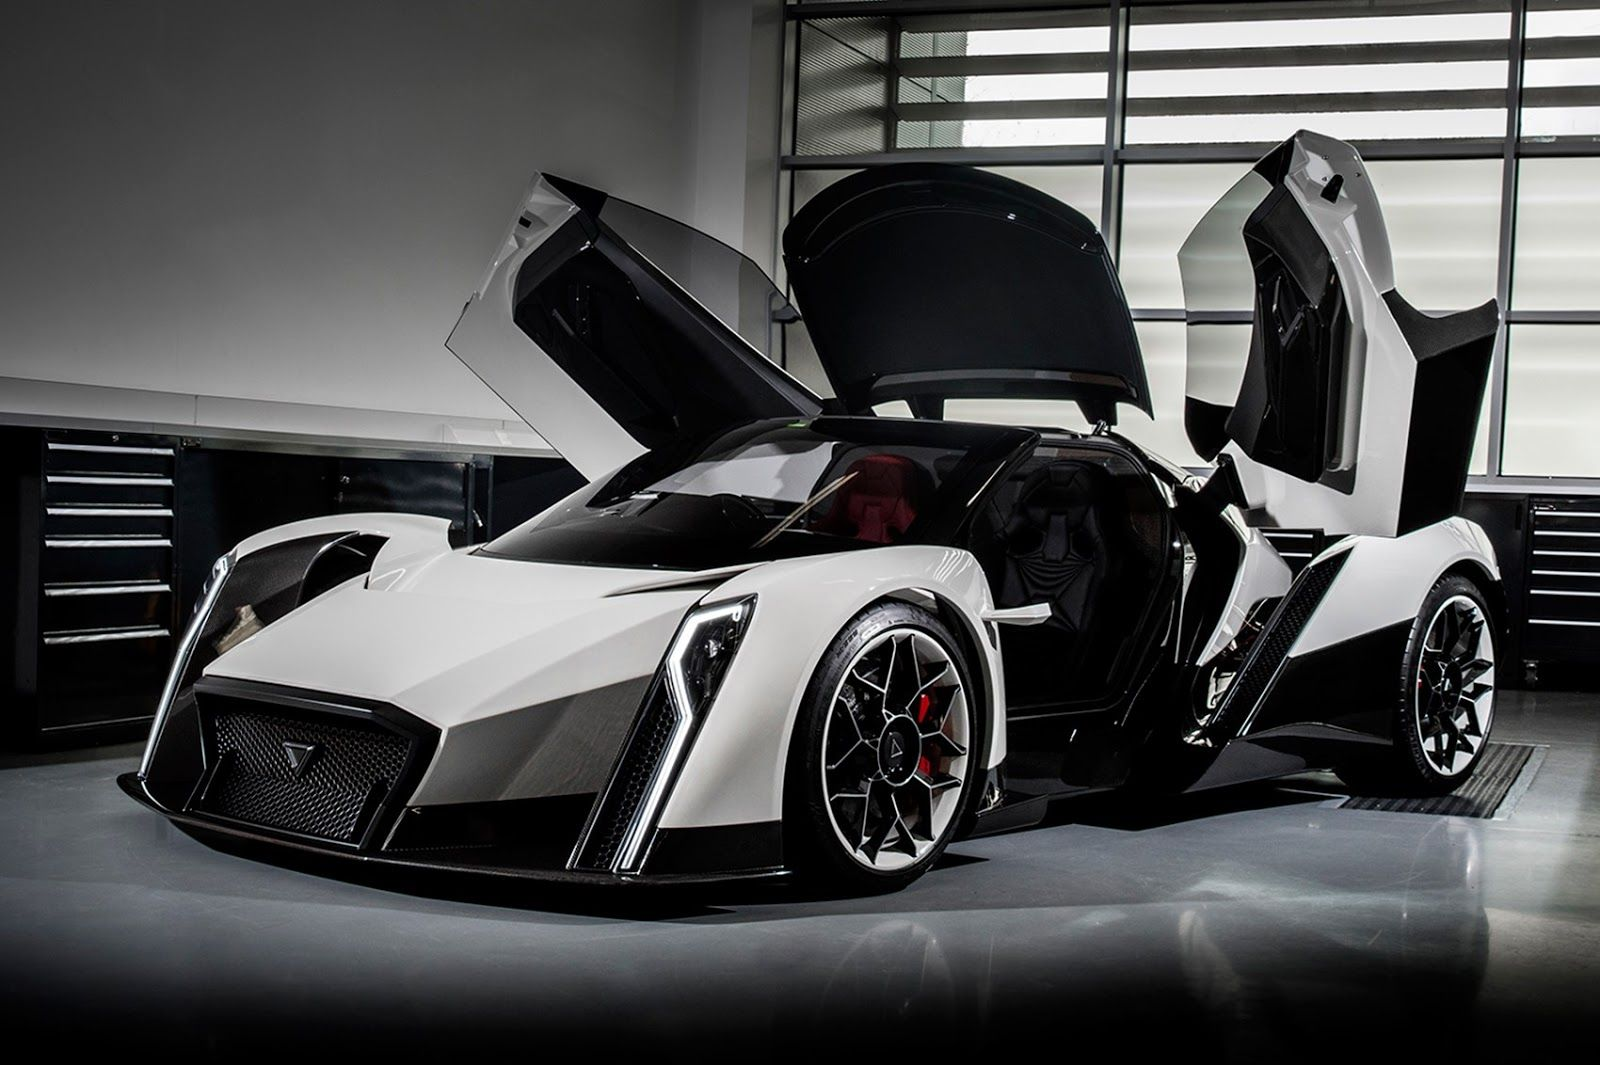 Vanda Electric S Dendrobium Hypercar Is Named After An Orchid Carscoops Super Cars Geneva Motor Show Car Brands